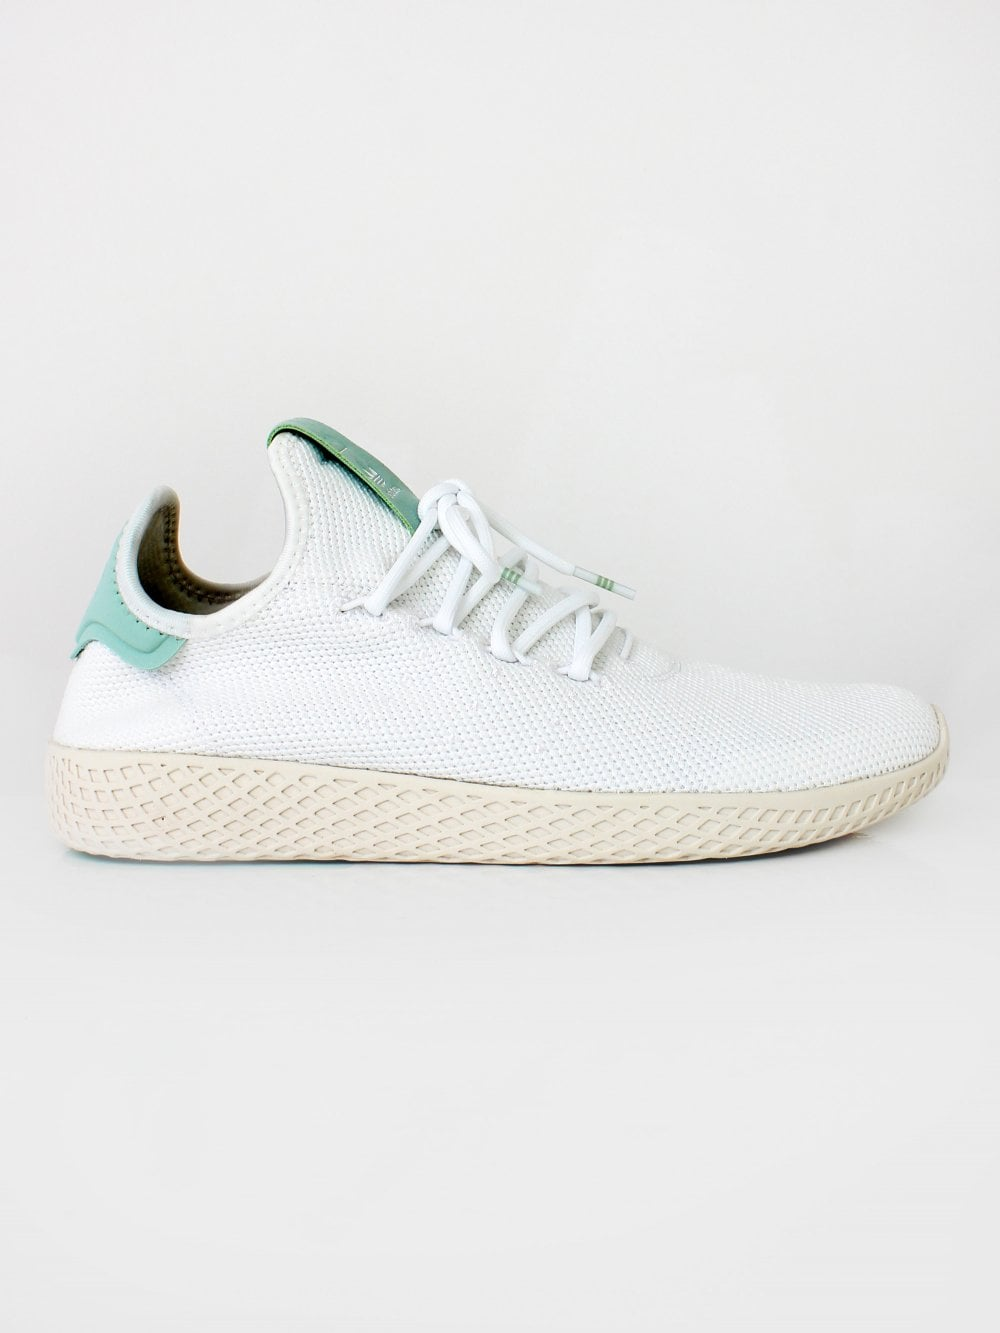 Mens adidas Originals Pharrell Williams Tennis HU Trainer - White ... 4ba4b88f5